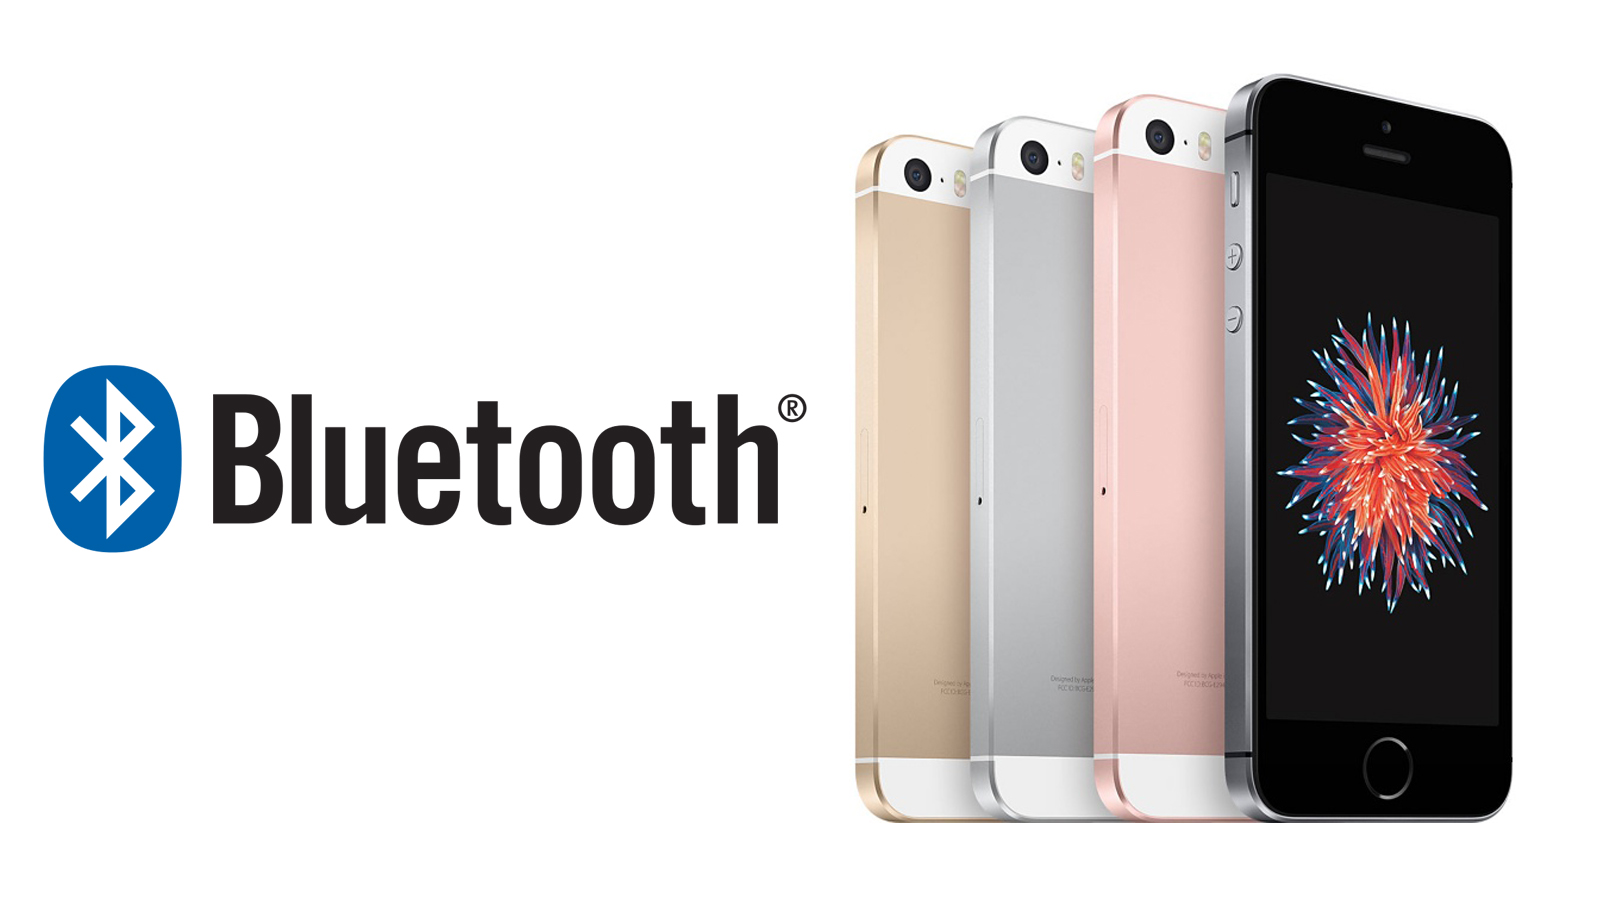 iPhone SE: audio distorto quando si chiama con dispositivi Bluetooth